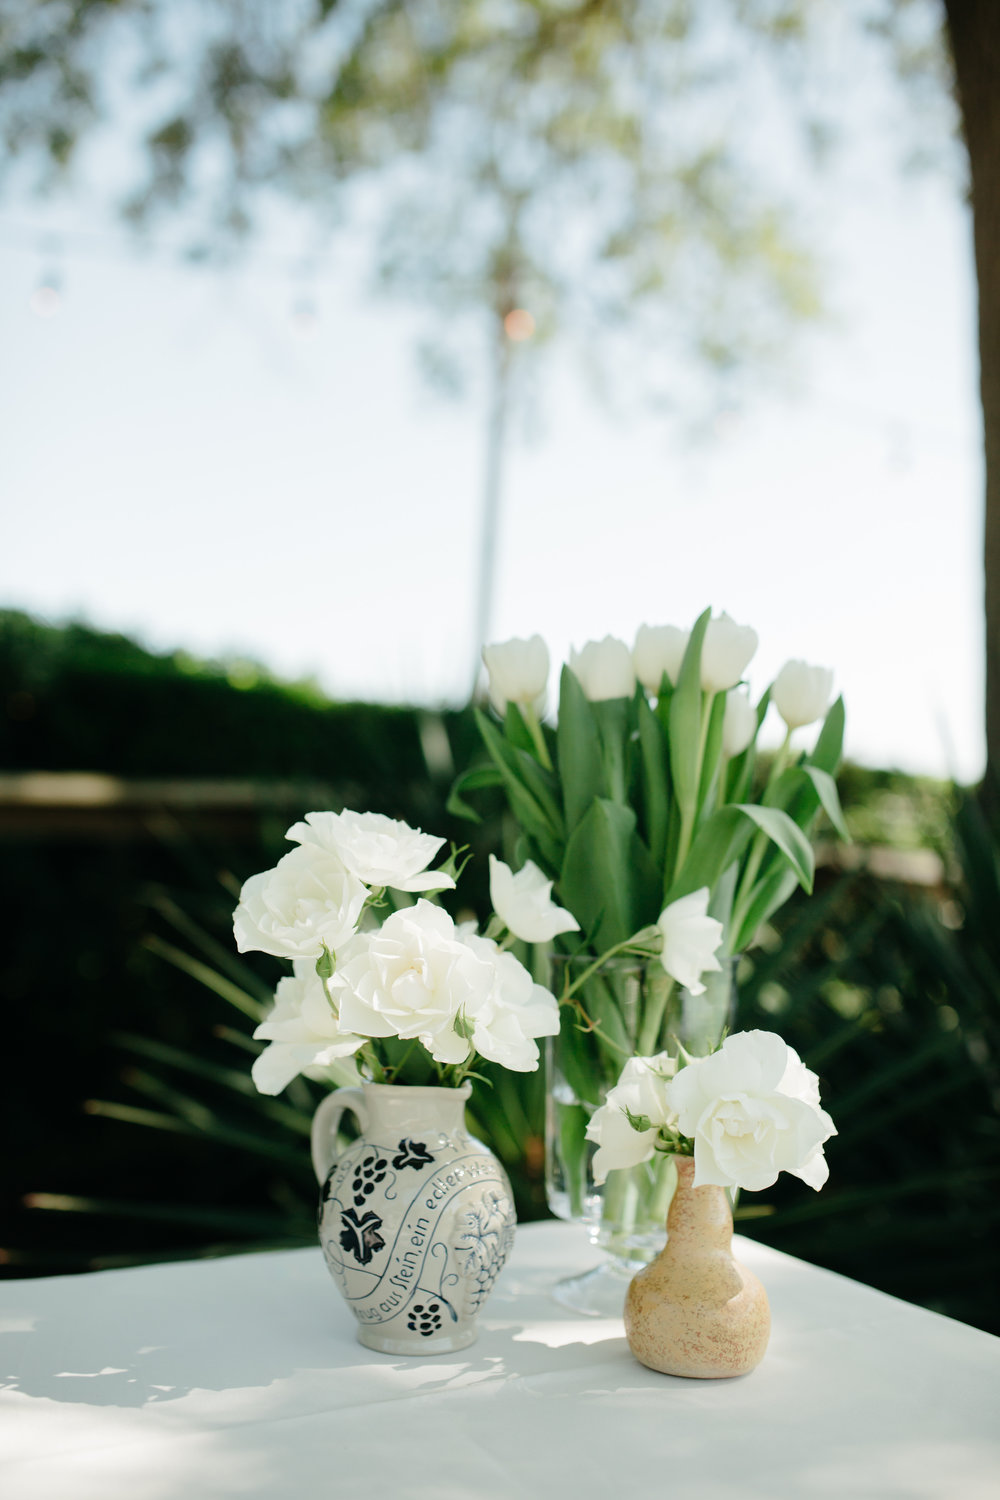 paraiso-event-design-charleston-mount-pleasant-waterfront-wedding-private-home-04.jpg